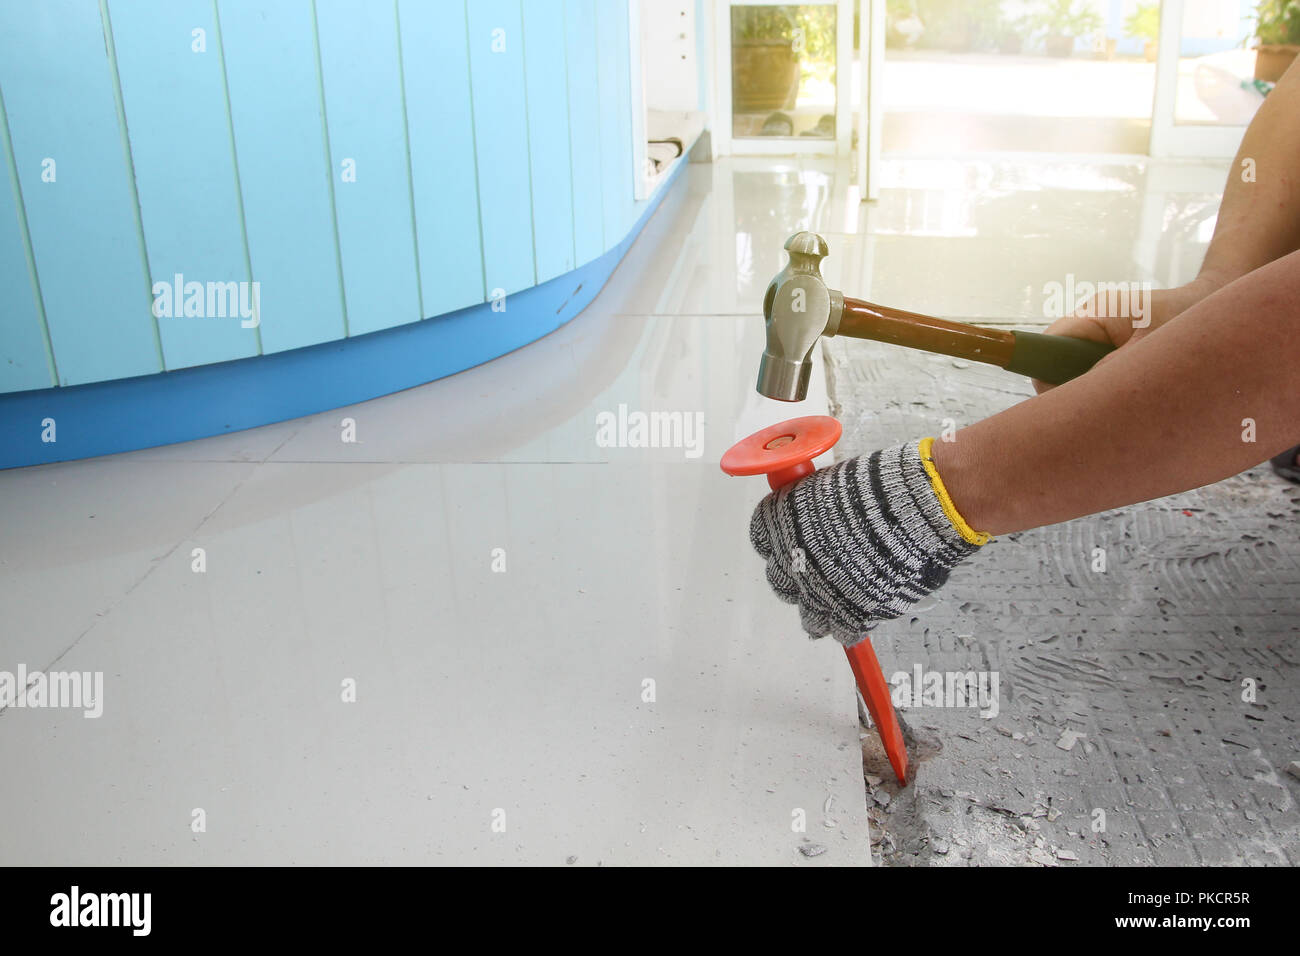 Tile Adhesive Stock Photos Tile Adhesive Stock Images Alamy